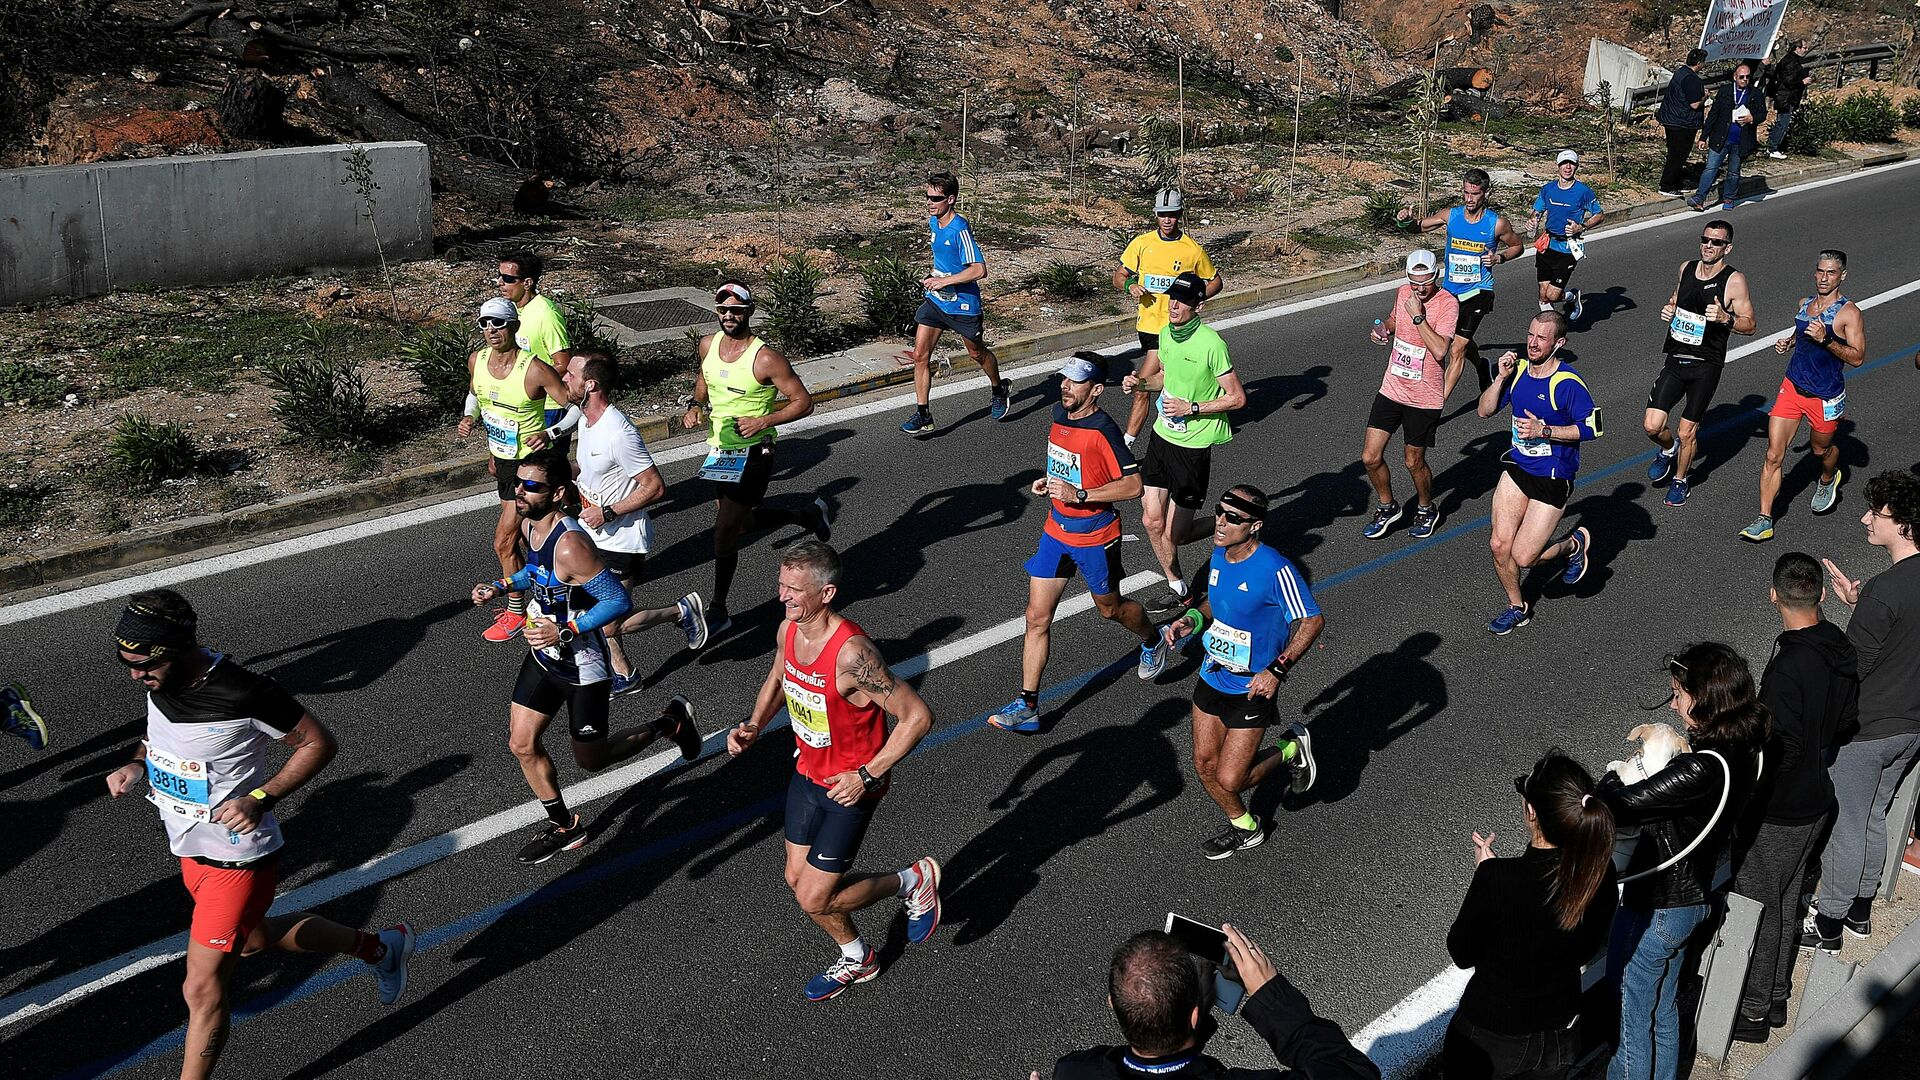 Athletes run past burned out area near the village of Mati during the  36th Athens Classic Marathon 'The authentic' from the town of Marathon to the Panathenaic stadium in Athens on November 11, 2018. (Photo by Louisa GOULIAMAKI / AFP) - РИА Новости, 1920, 02.10.2020